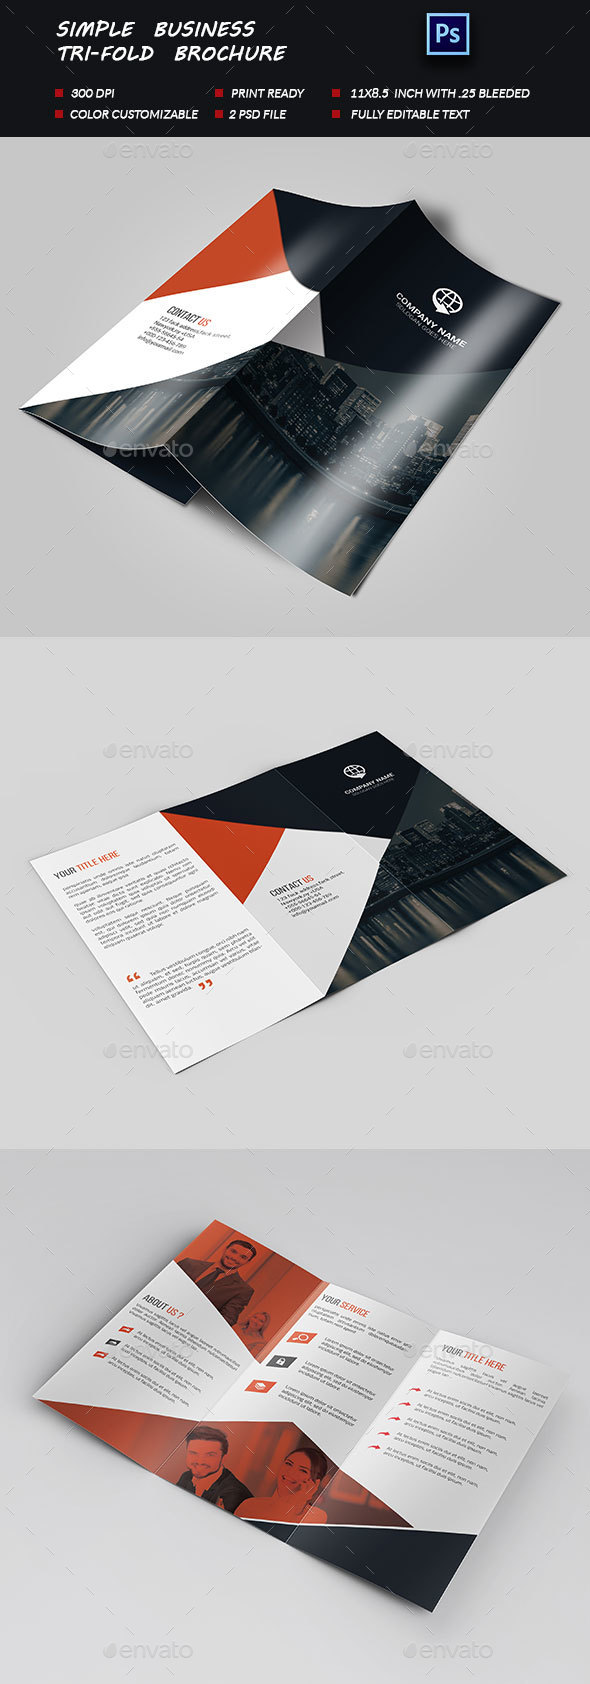 Simple Business Tri-fold Brochure - Brochures Print Templates